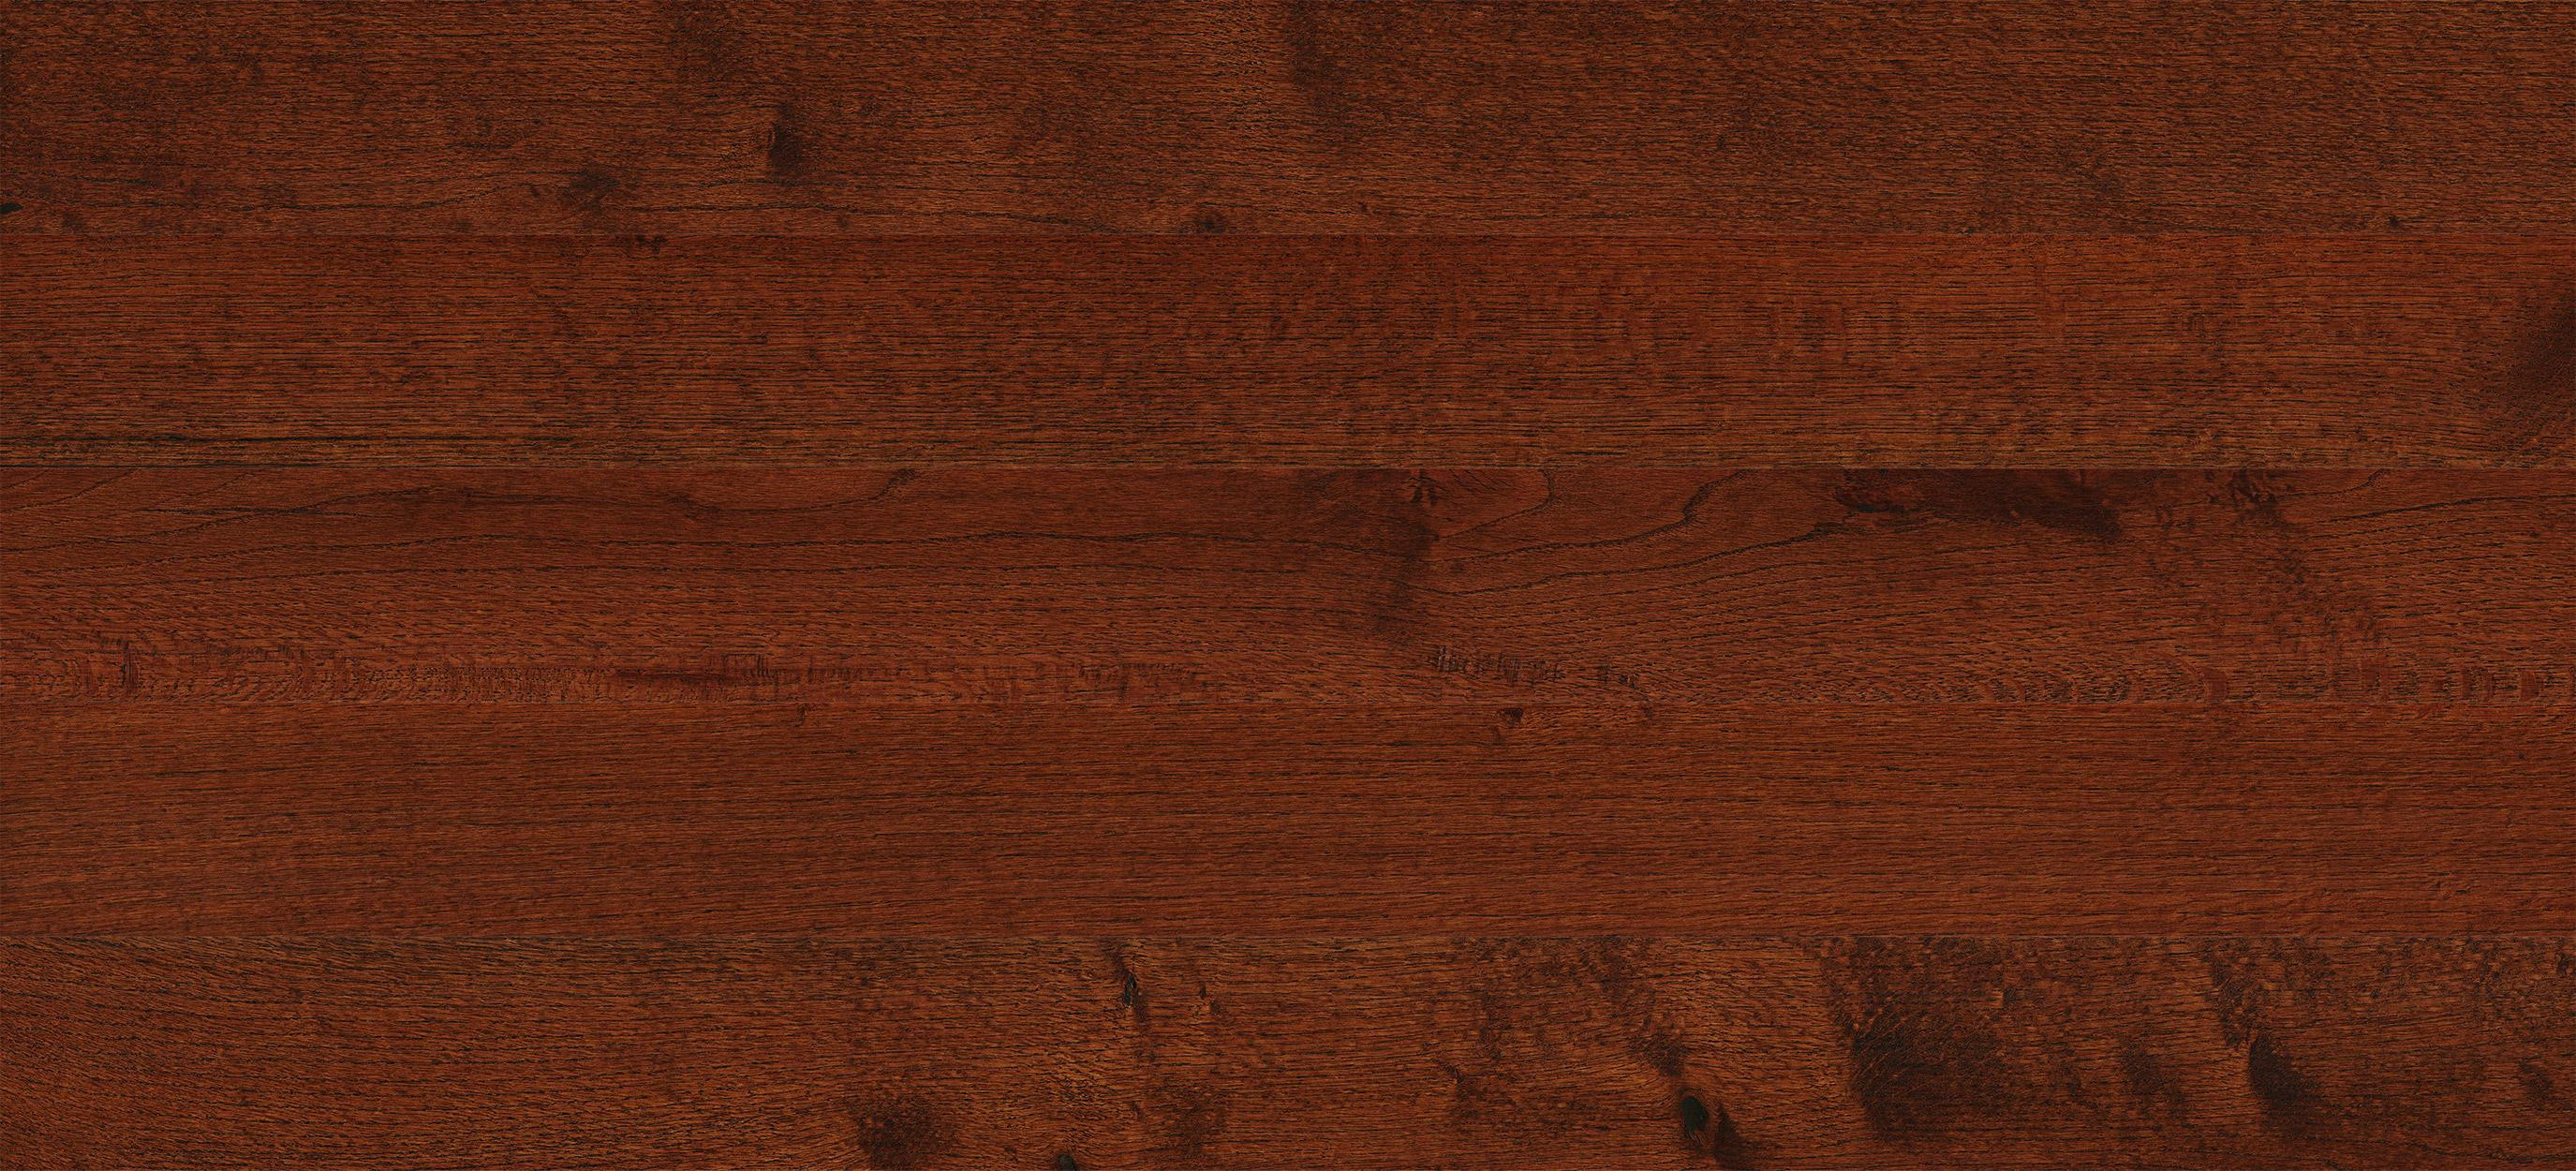 hardwood flooring versus laminate flooring of timber hardwood red oak sorrell 5 wide solid hardwood flooring with regard to red oak sorrell timber solid 5 x 55 ish horizontal